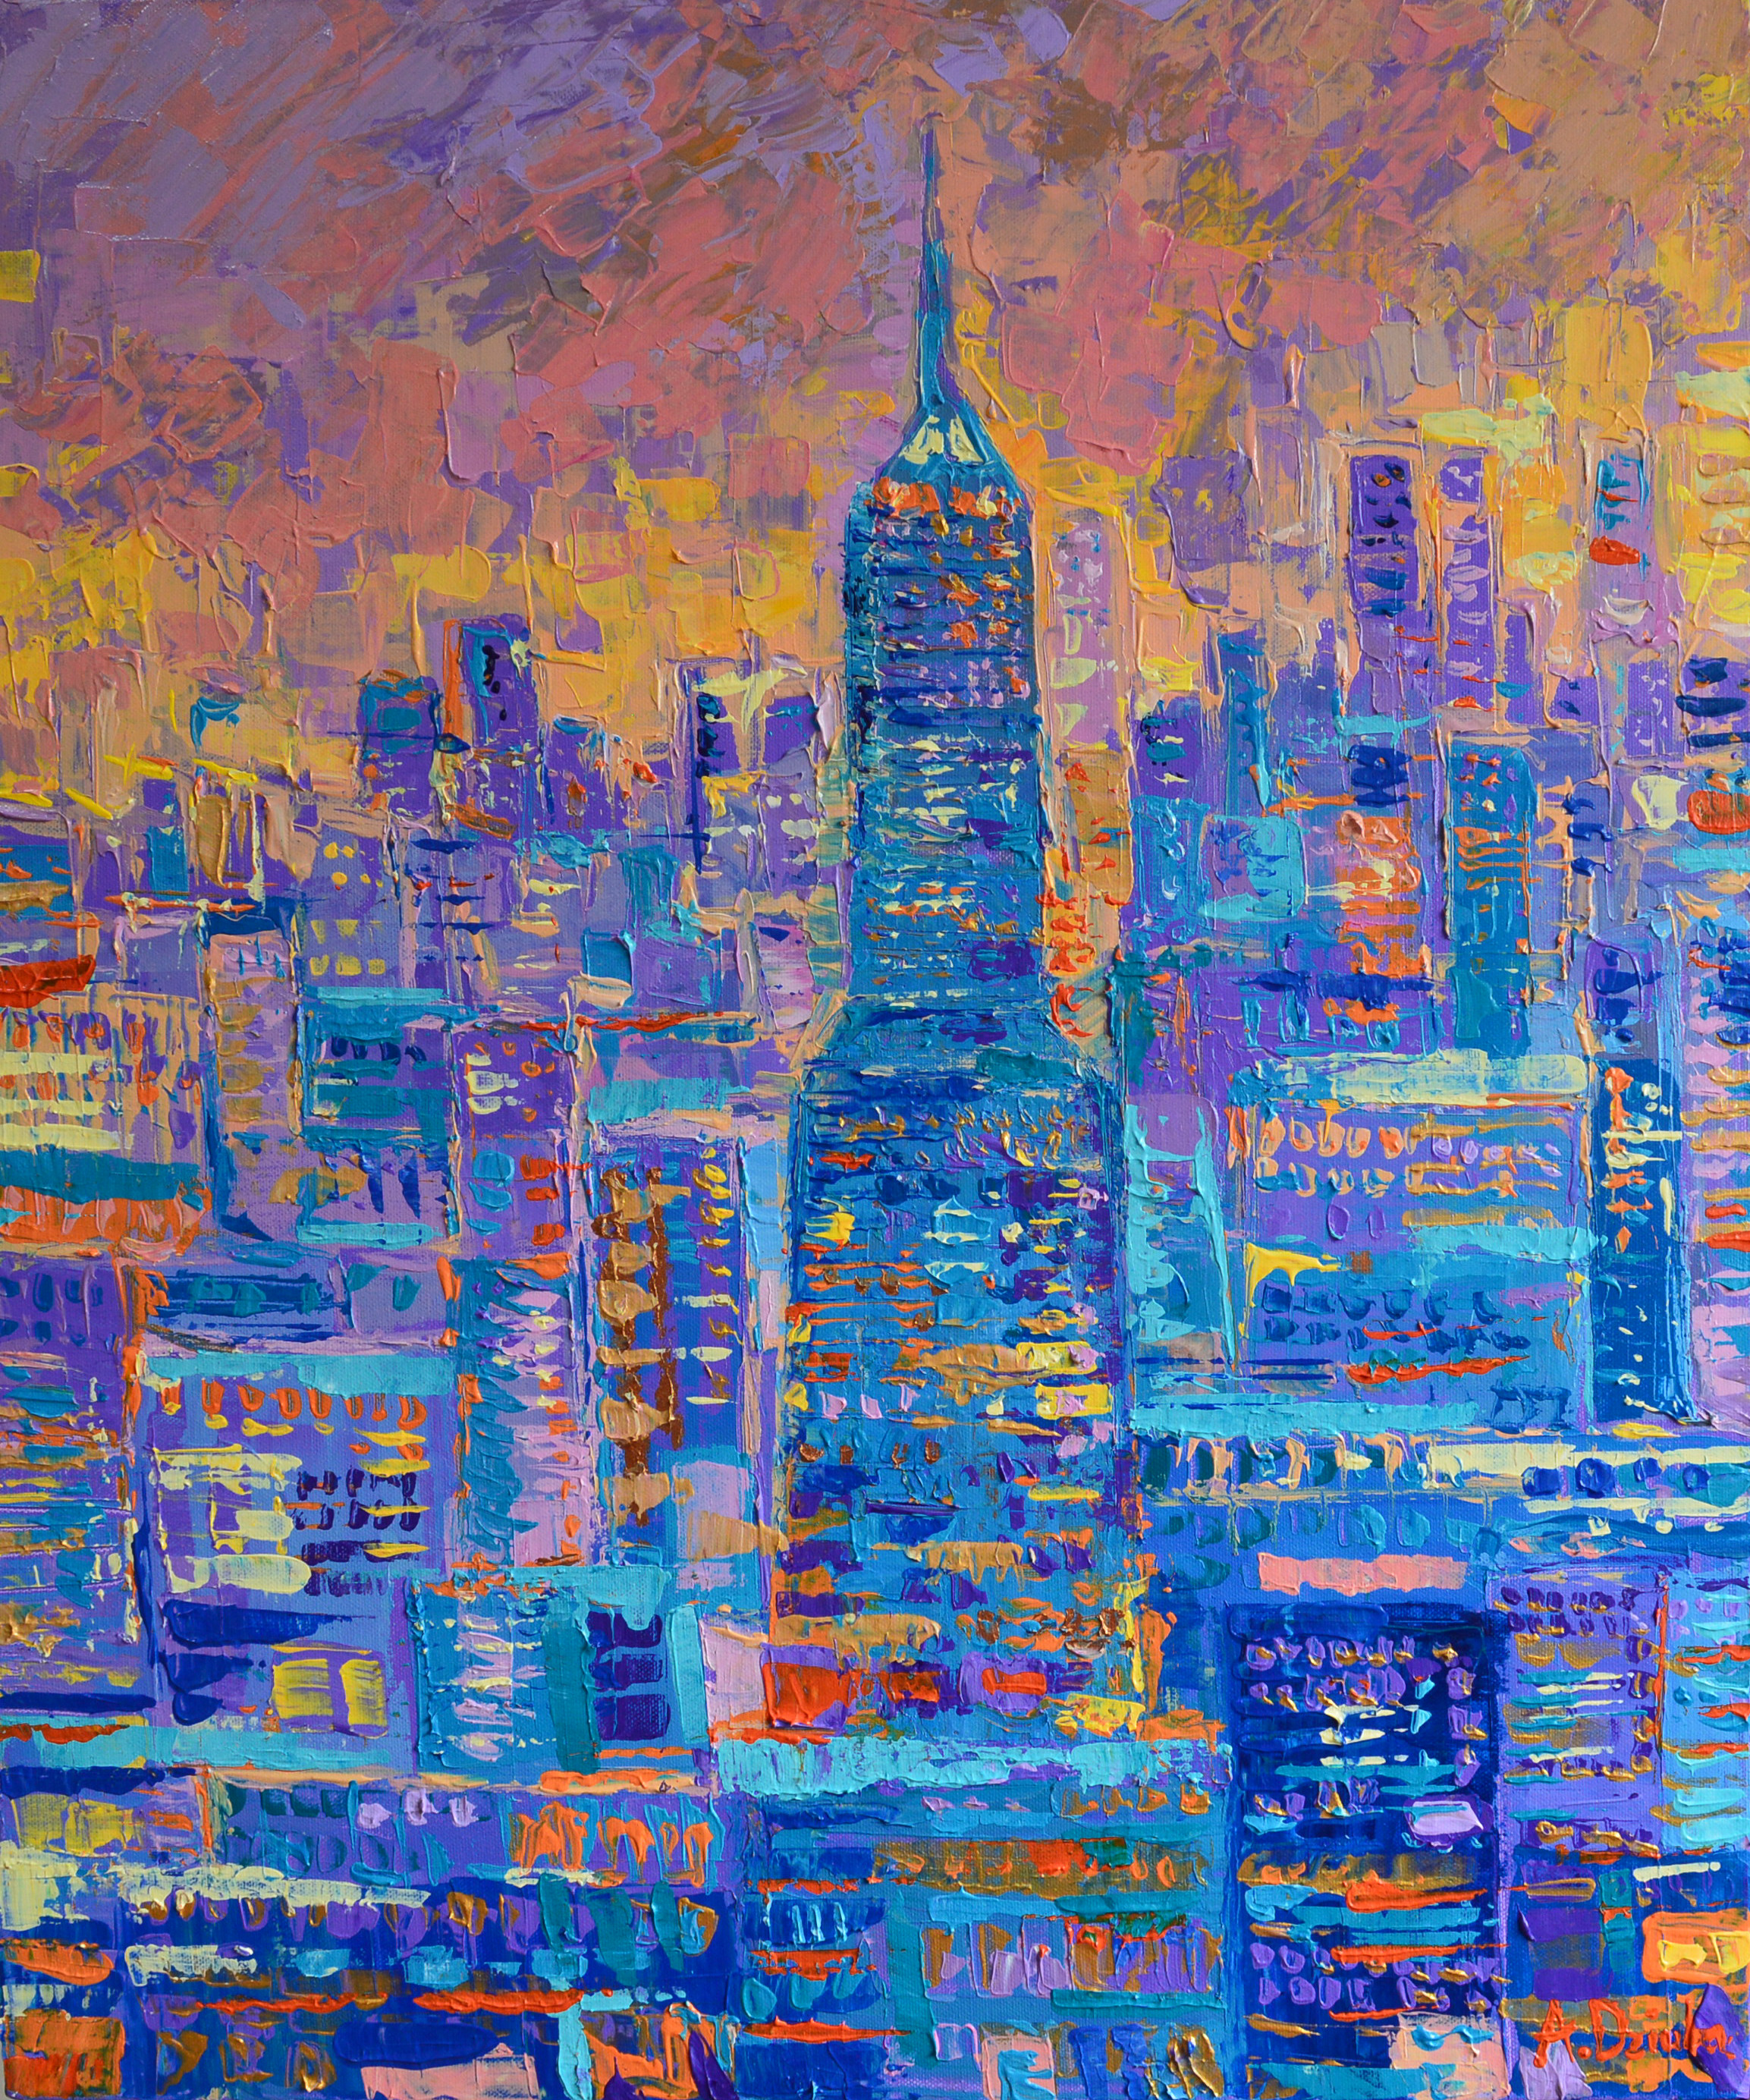 Manhattan, original palette knife acrylic on canvas inspired by vibrant New York by Adriana Dziuba